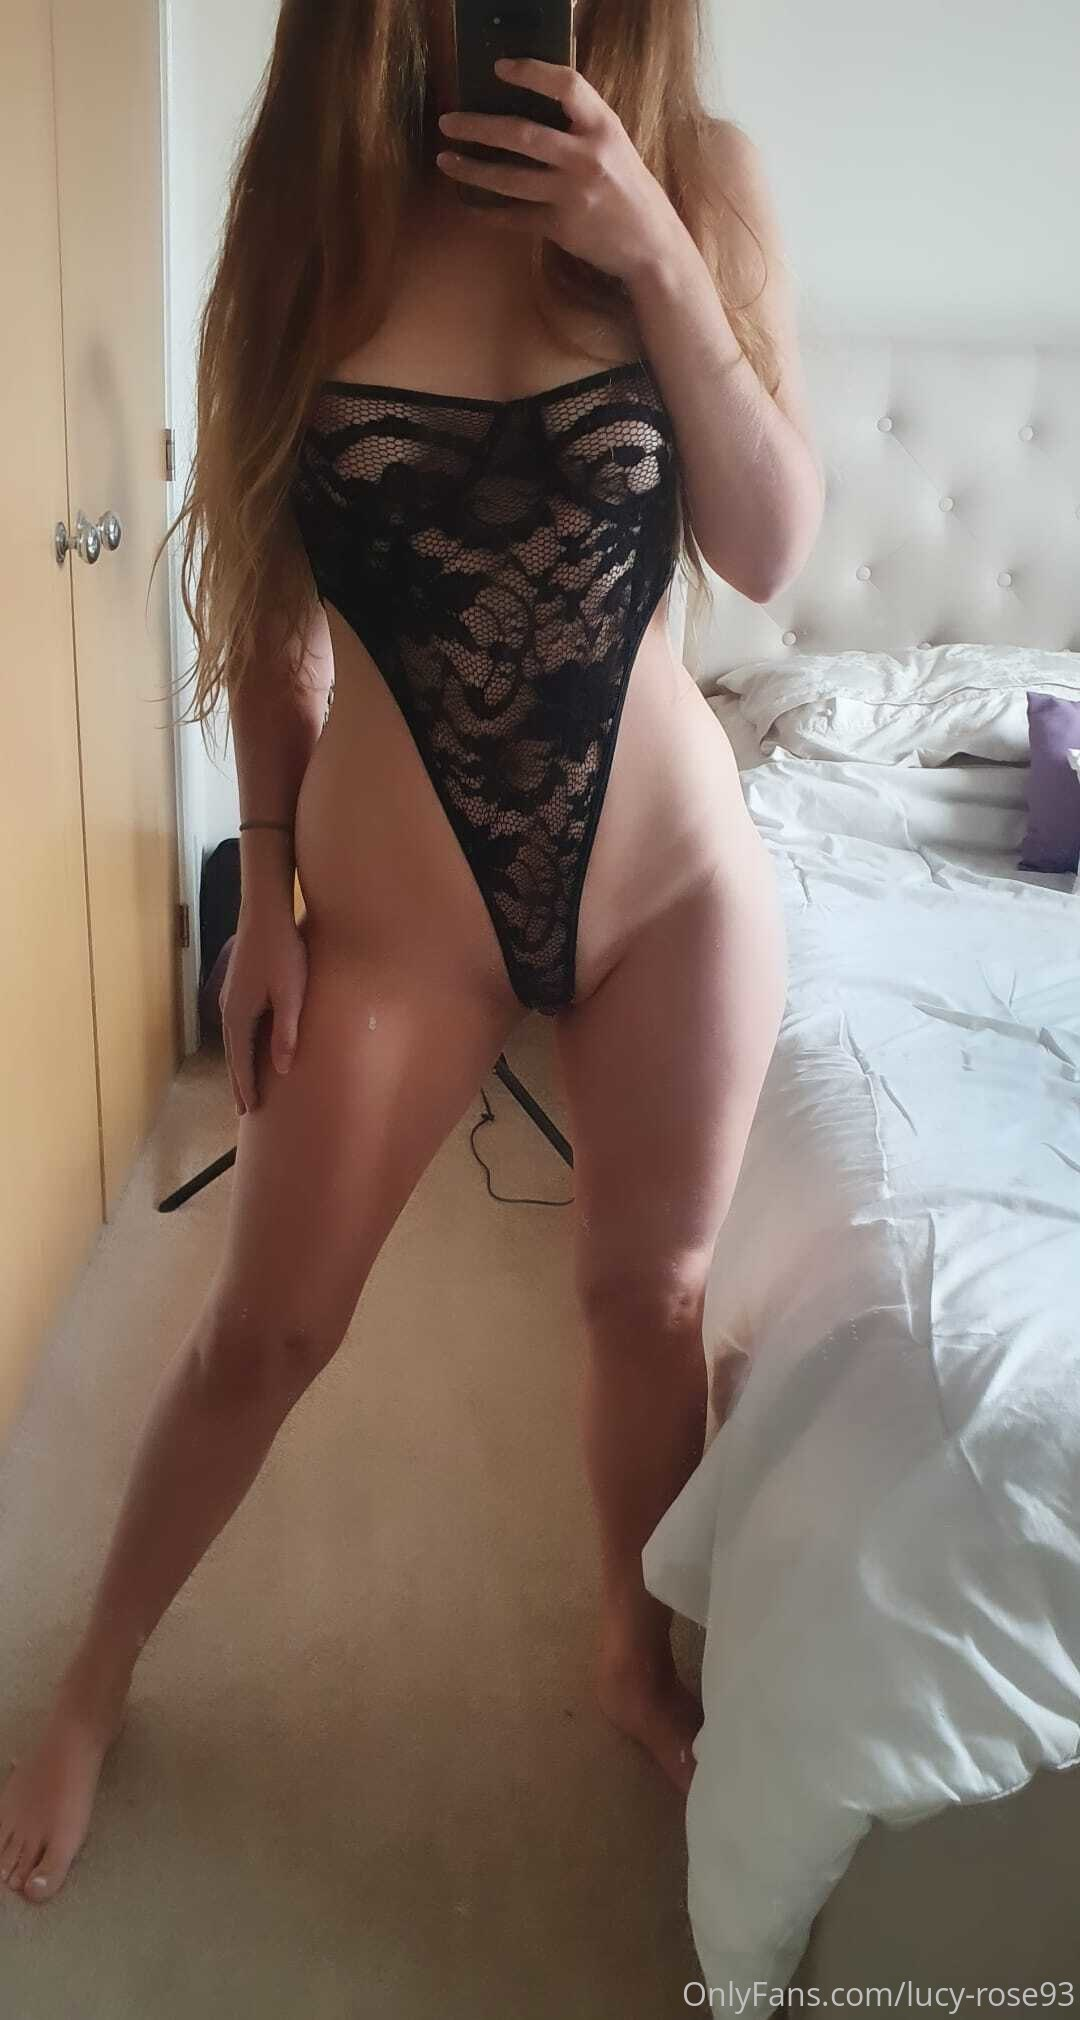 Lucy Rose, Lucy Rose93, Onlyfans 0298